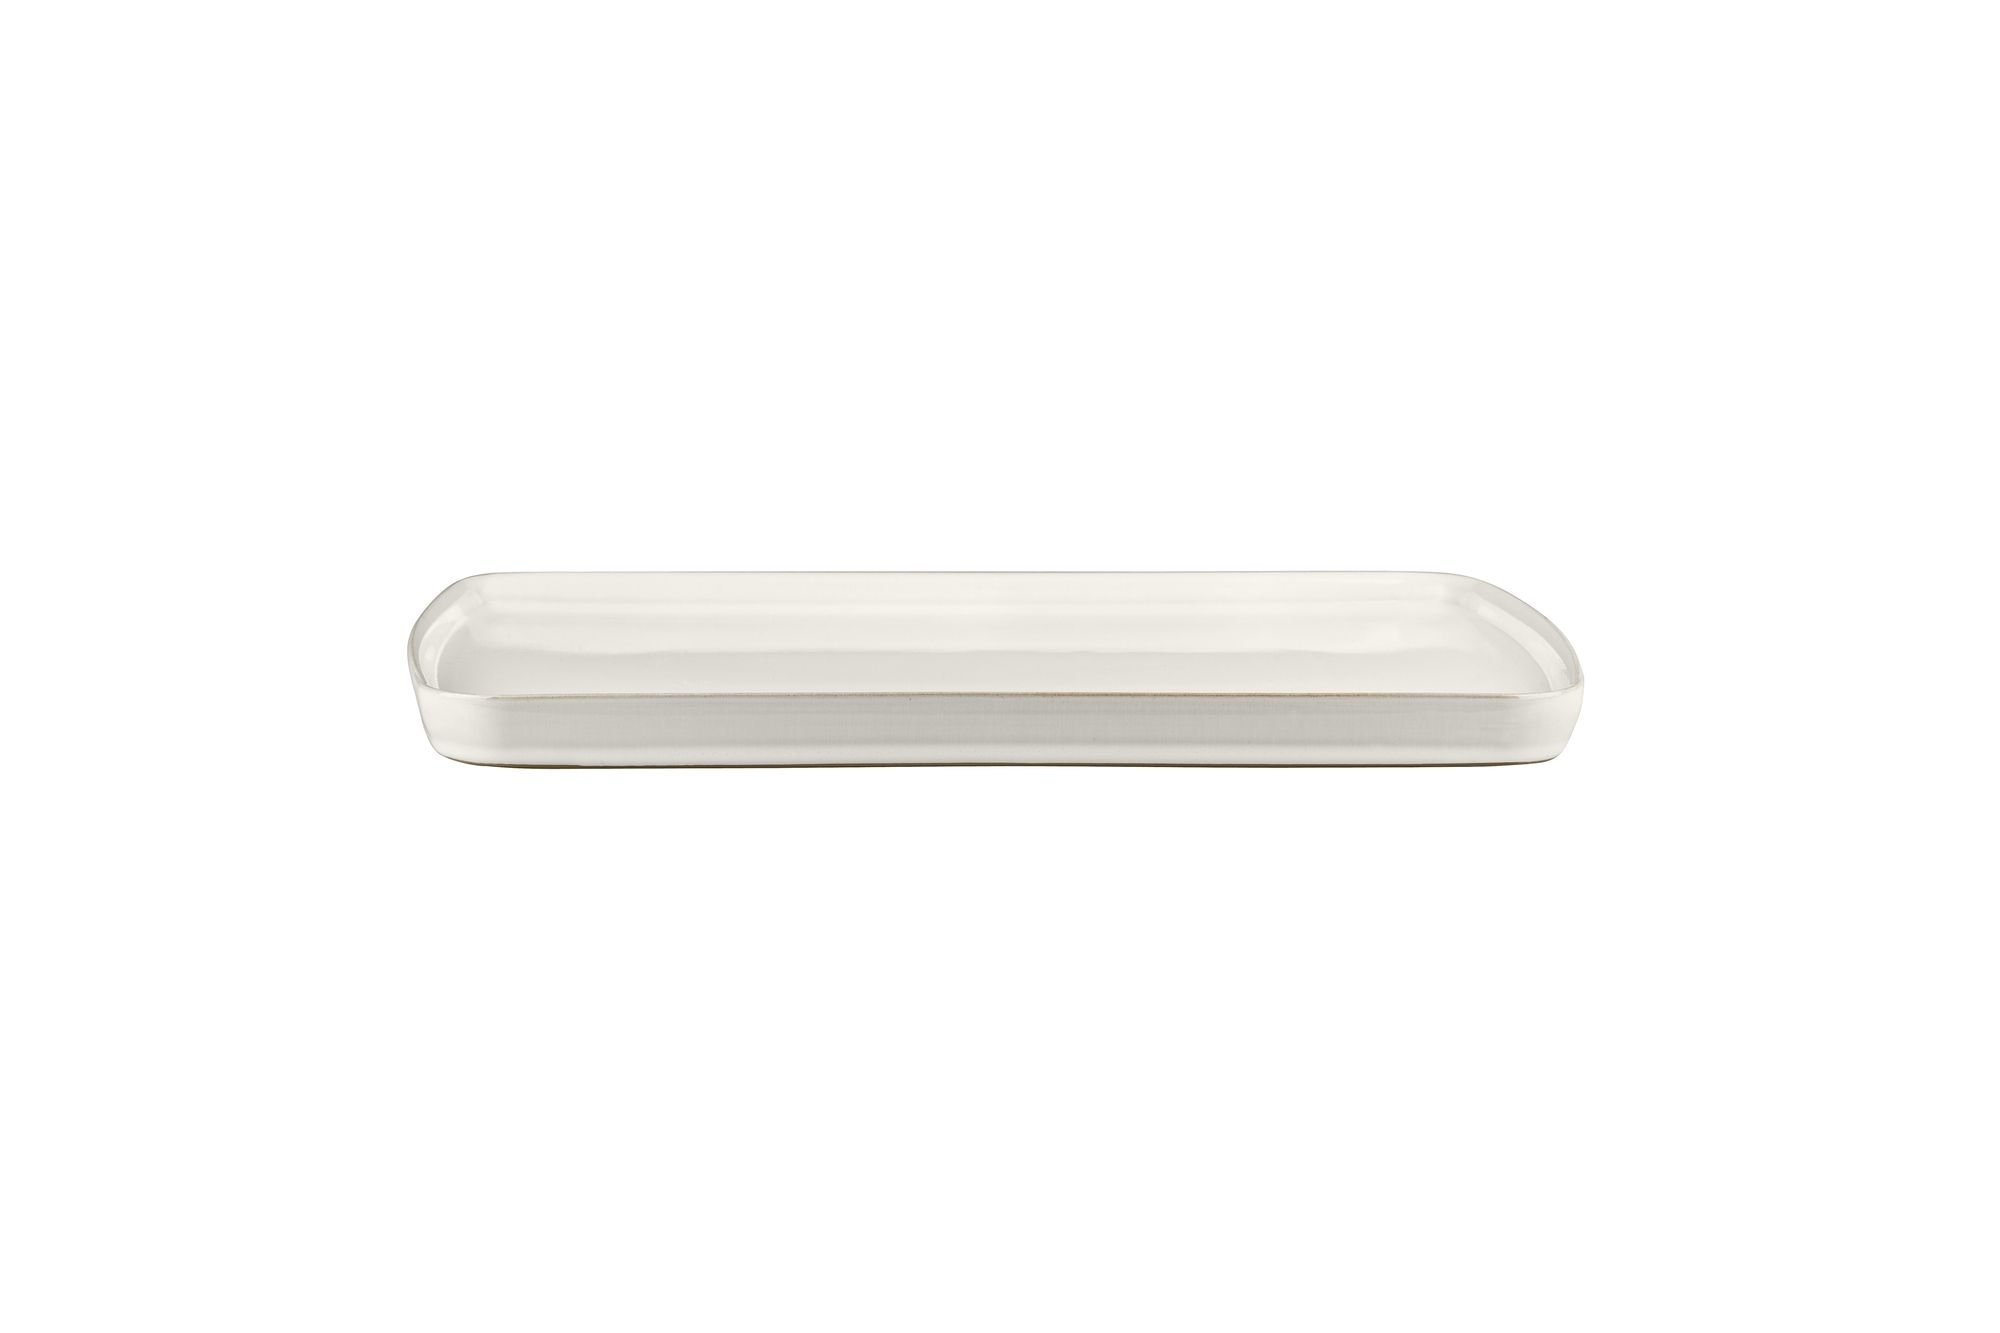 Denby Natural Canvas Rectangular Platter 39 x 26cm thumb 2